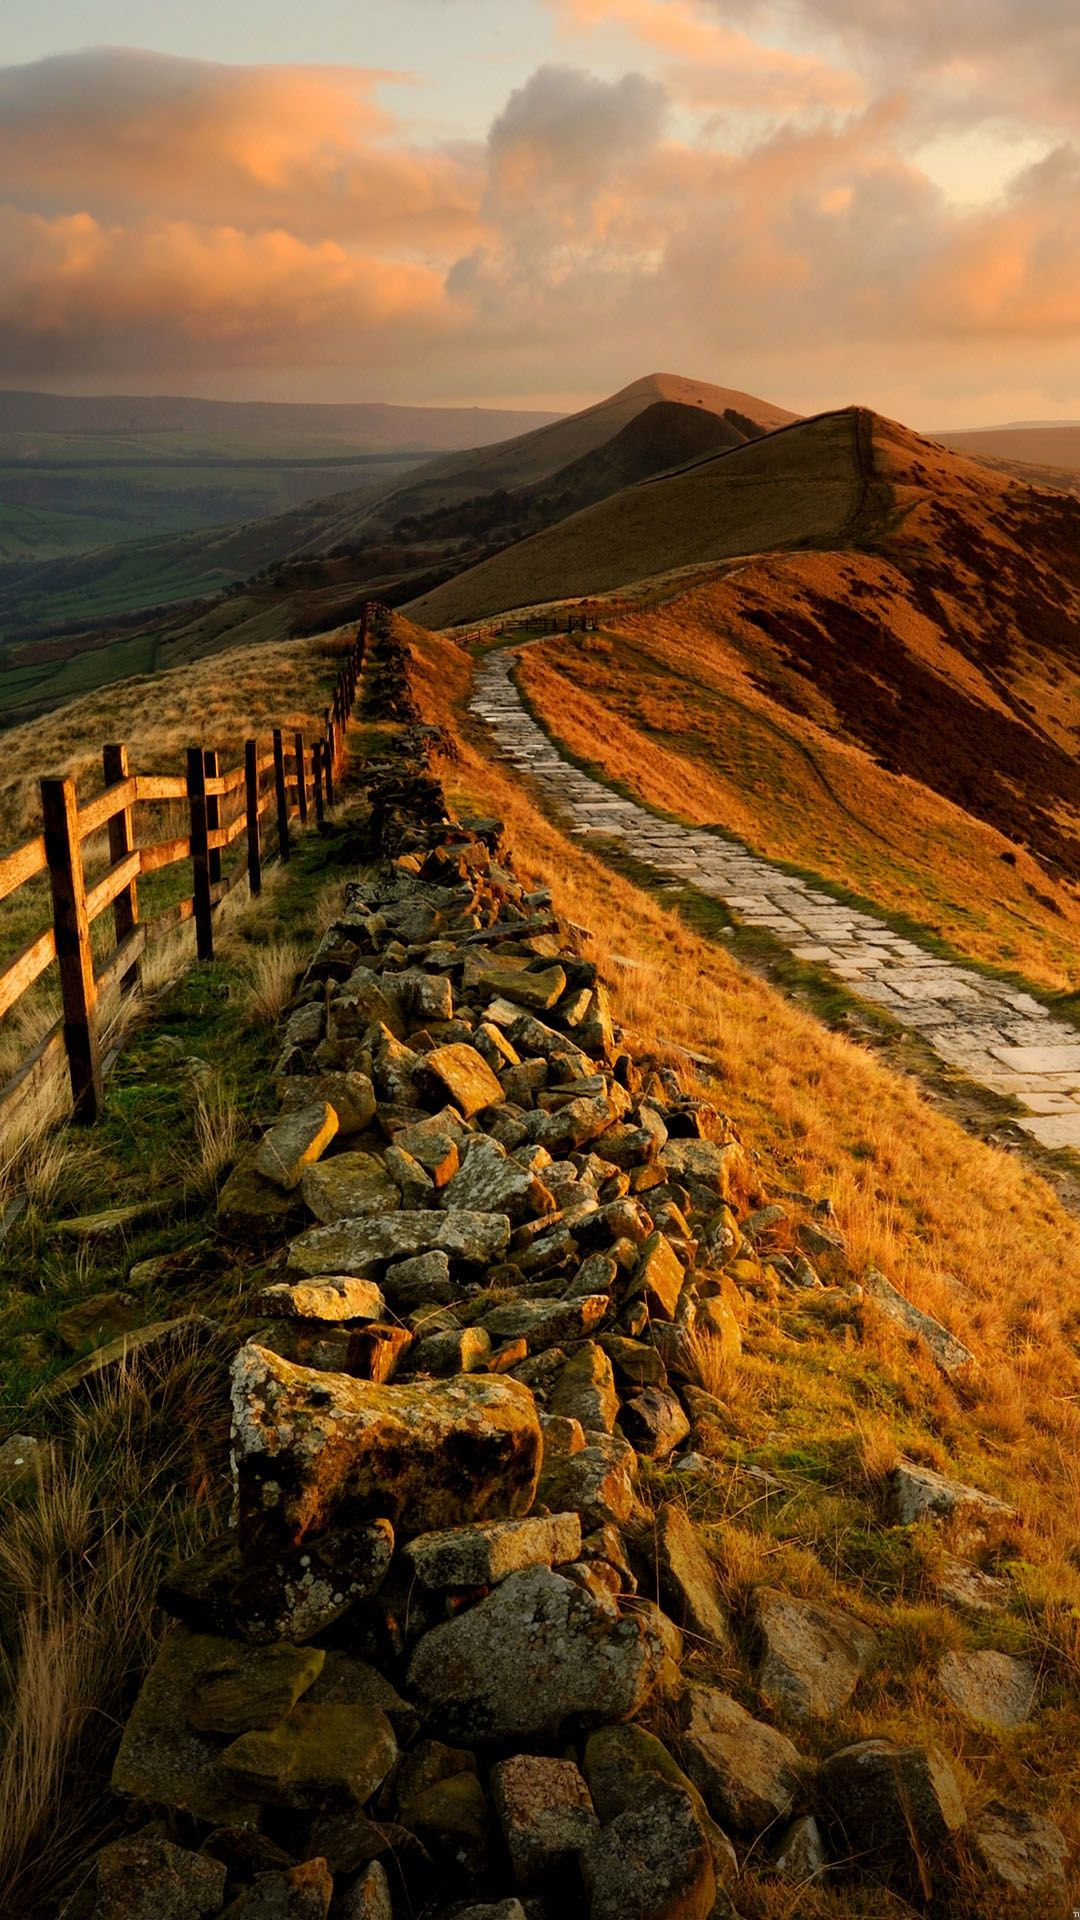 Mountain Rock Trail Sunset Android Wallpaper Android Wallpaper